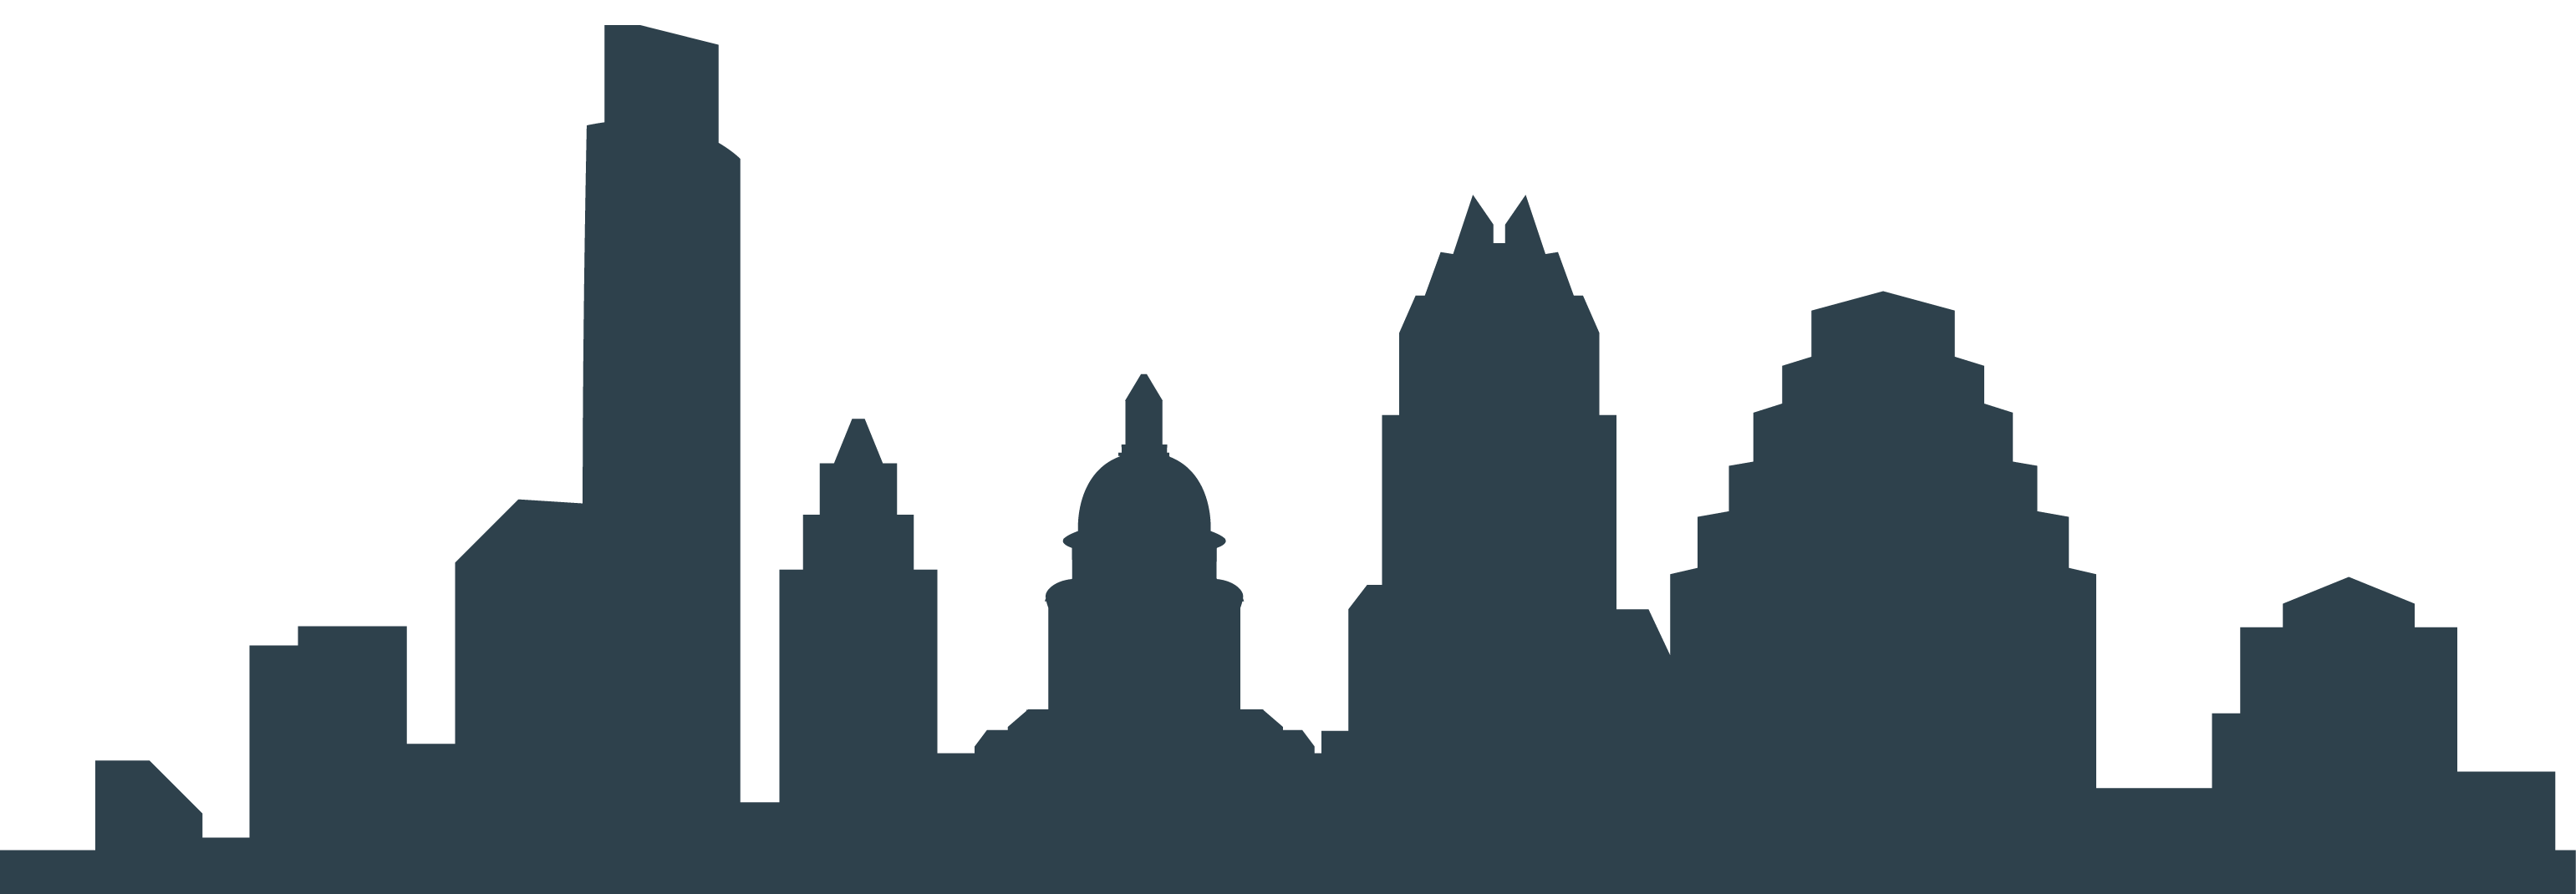 clipart freeuse download Austin Skyline Silhouette at GetDrawings